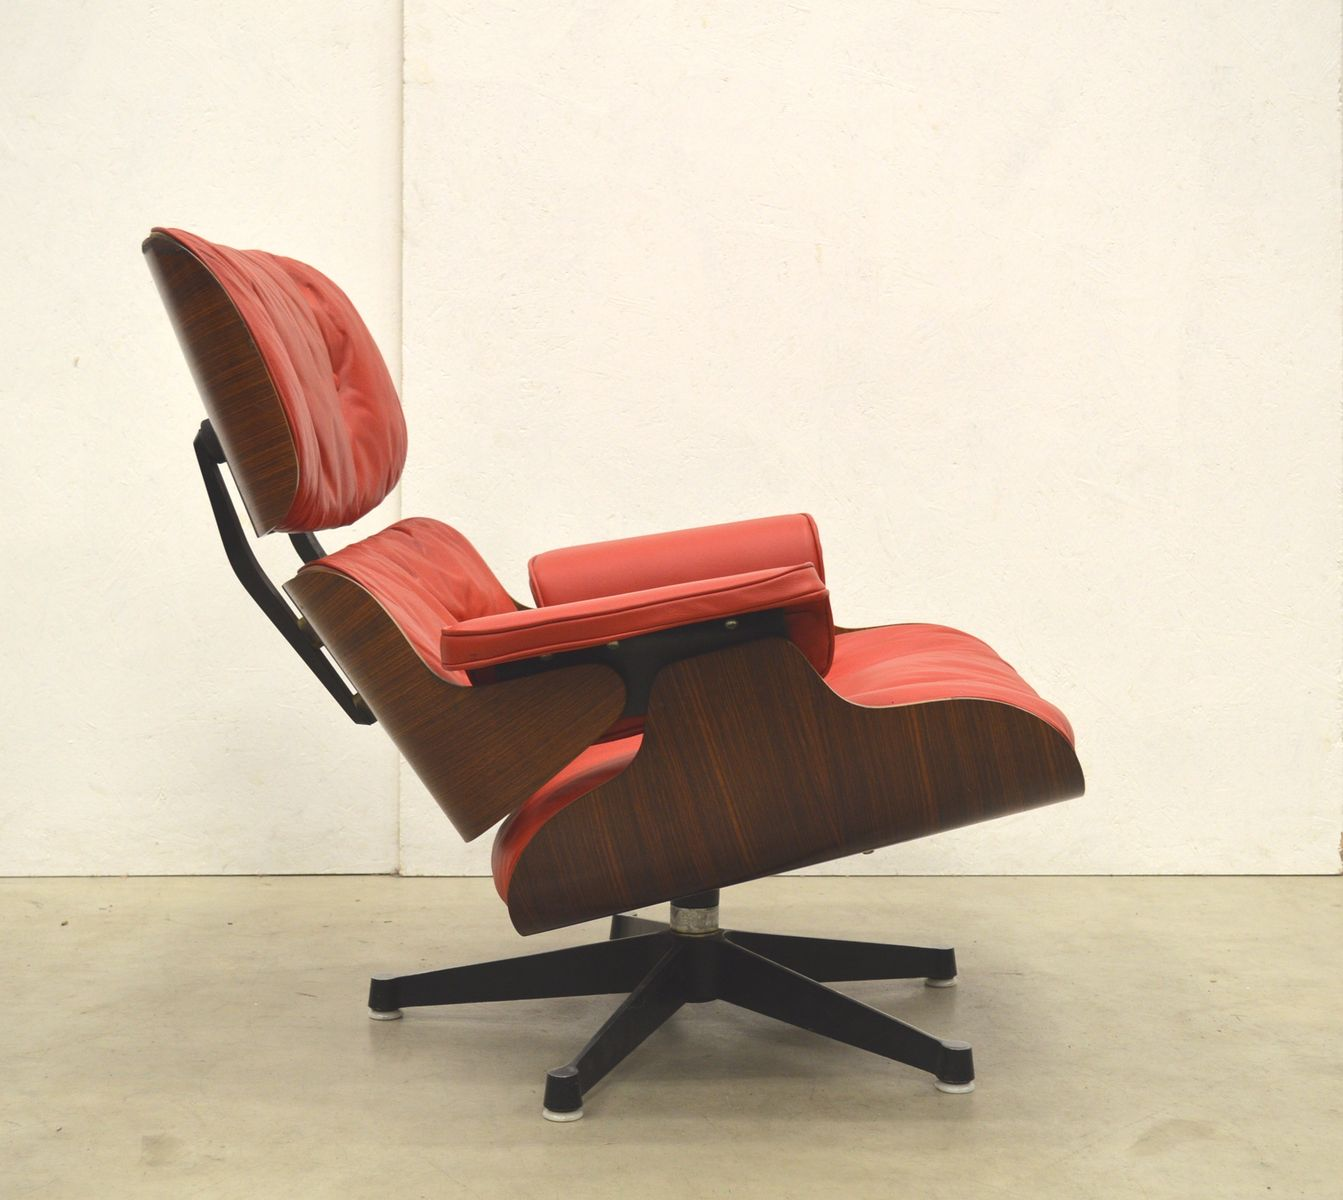 Sessel Charles Eames Sessel Von Charles And Ray Eames Für Herman Miller 1950er